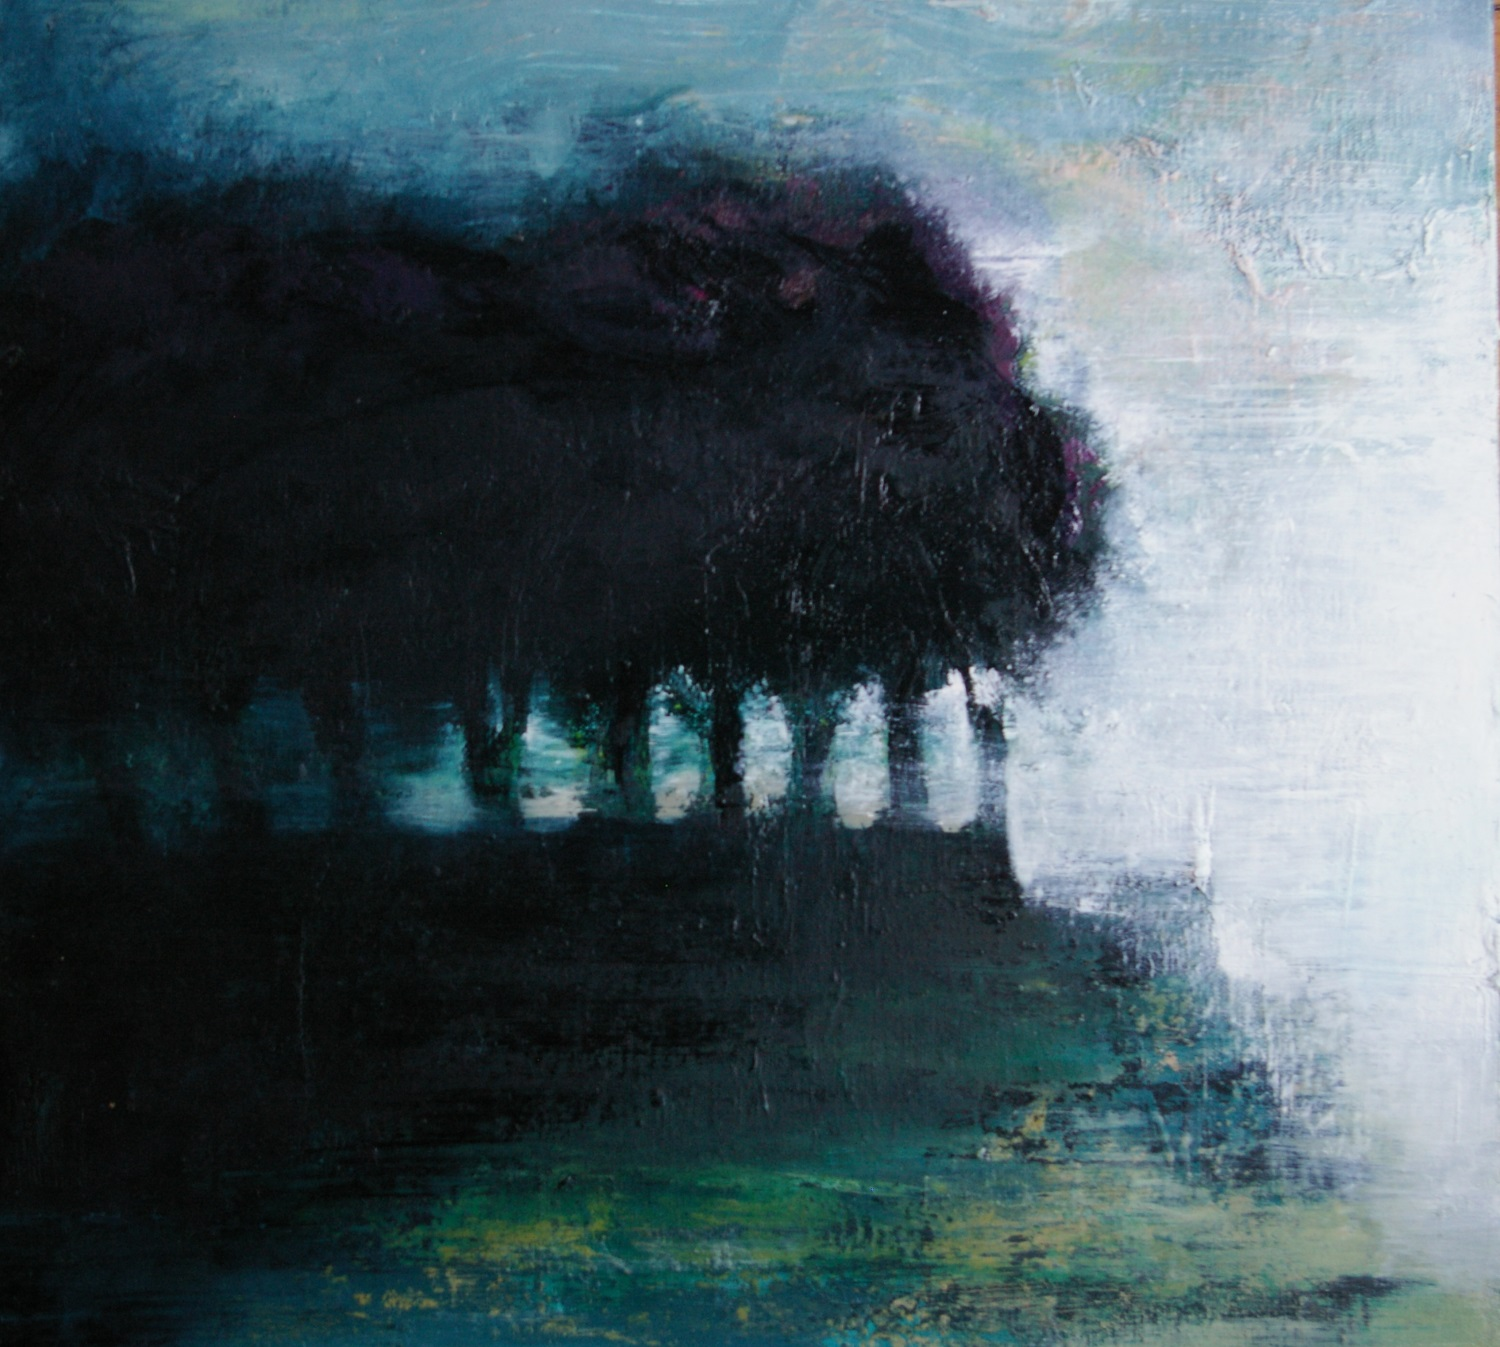 Memories of a walk 5: Way home  - Caitriona O'Leary